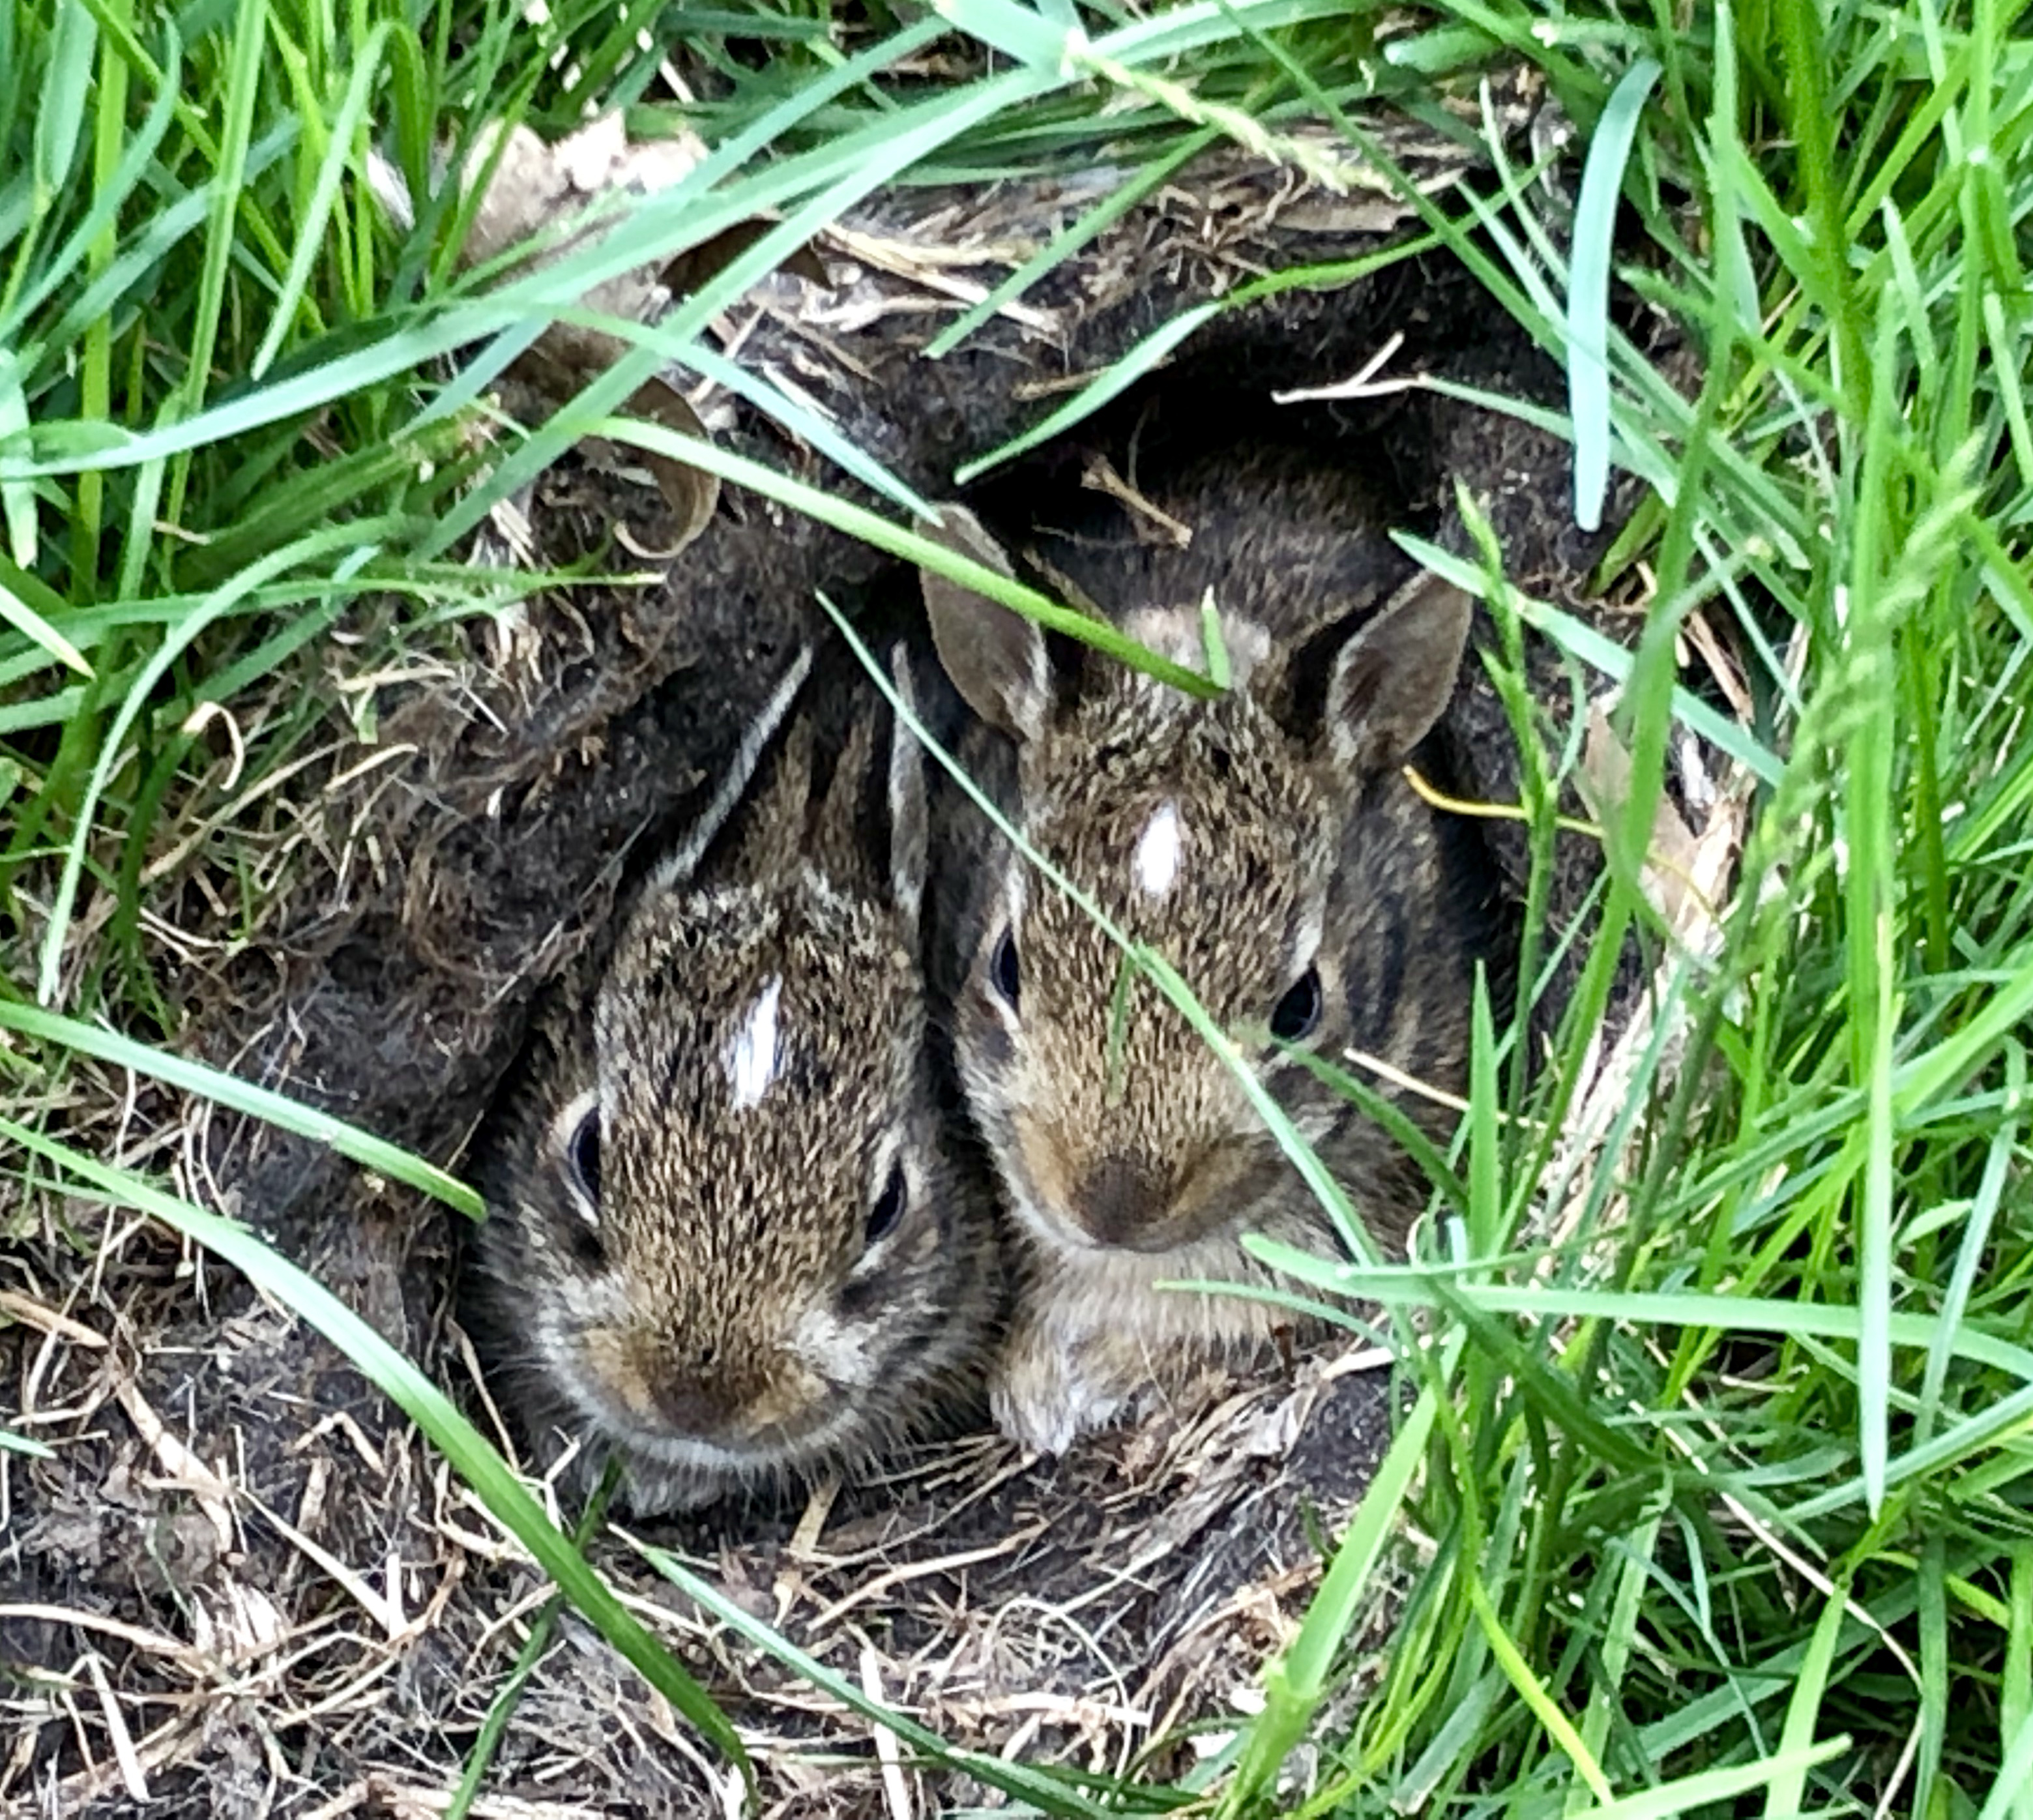 What Should I Do If I Find An Orphaned Or Abandoned Baby Rabbit Bunny In New Hampshire Rabbit Wildlifehelp Org